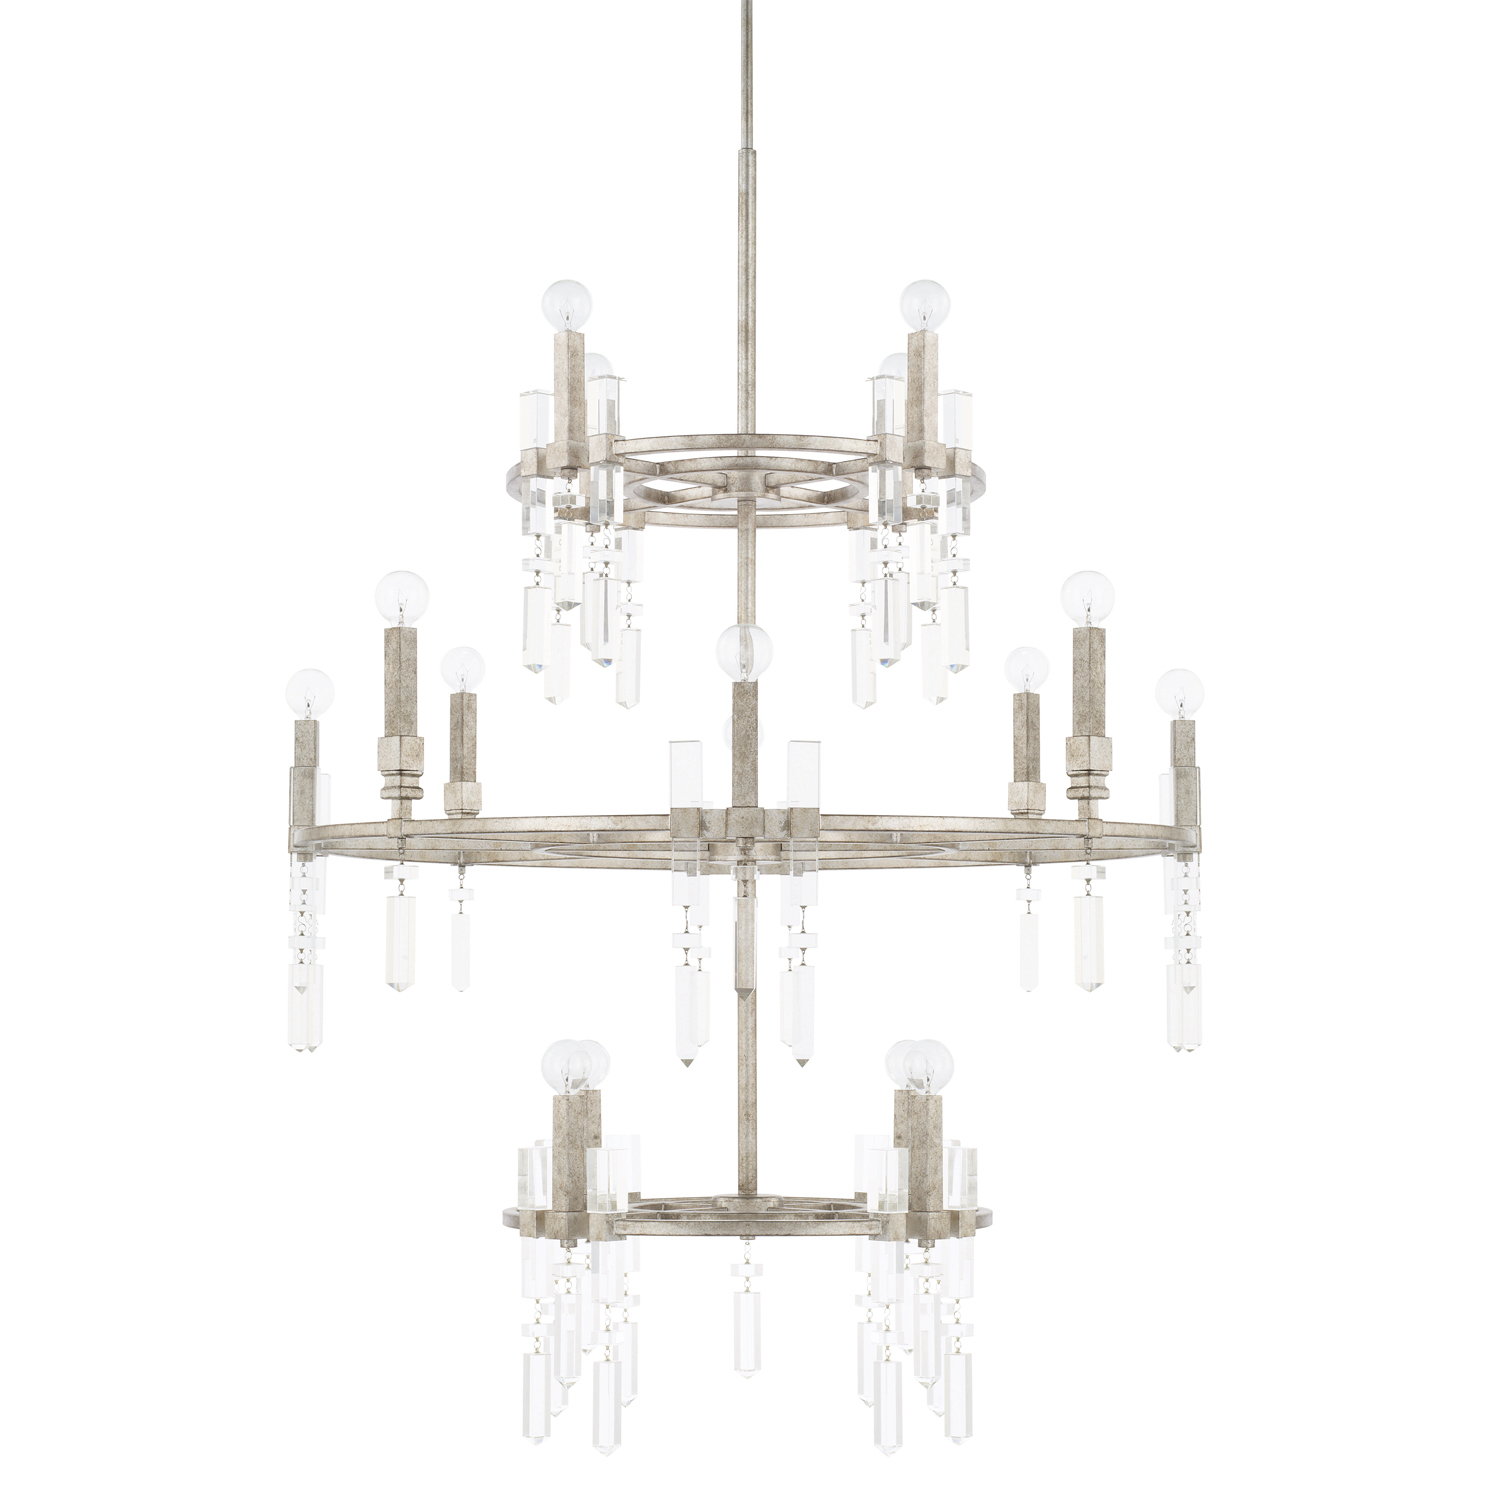 16 Light Foyer Chandelier from the Drake collection by Capital Lighting 525301AS